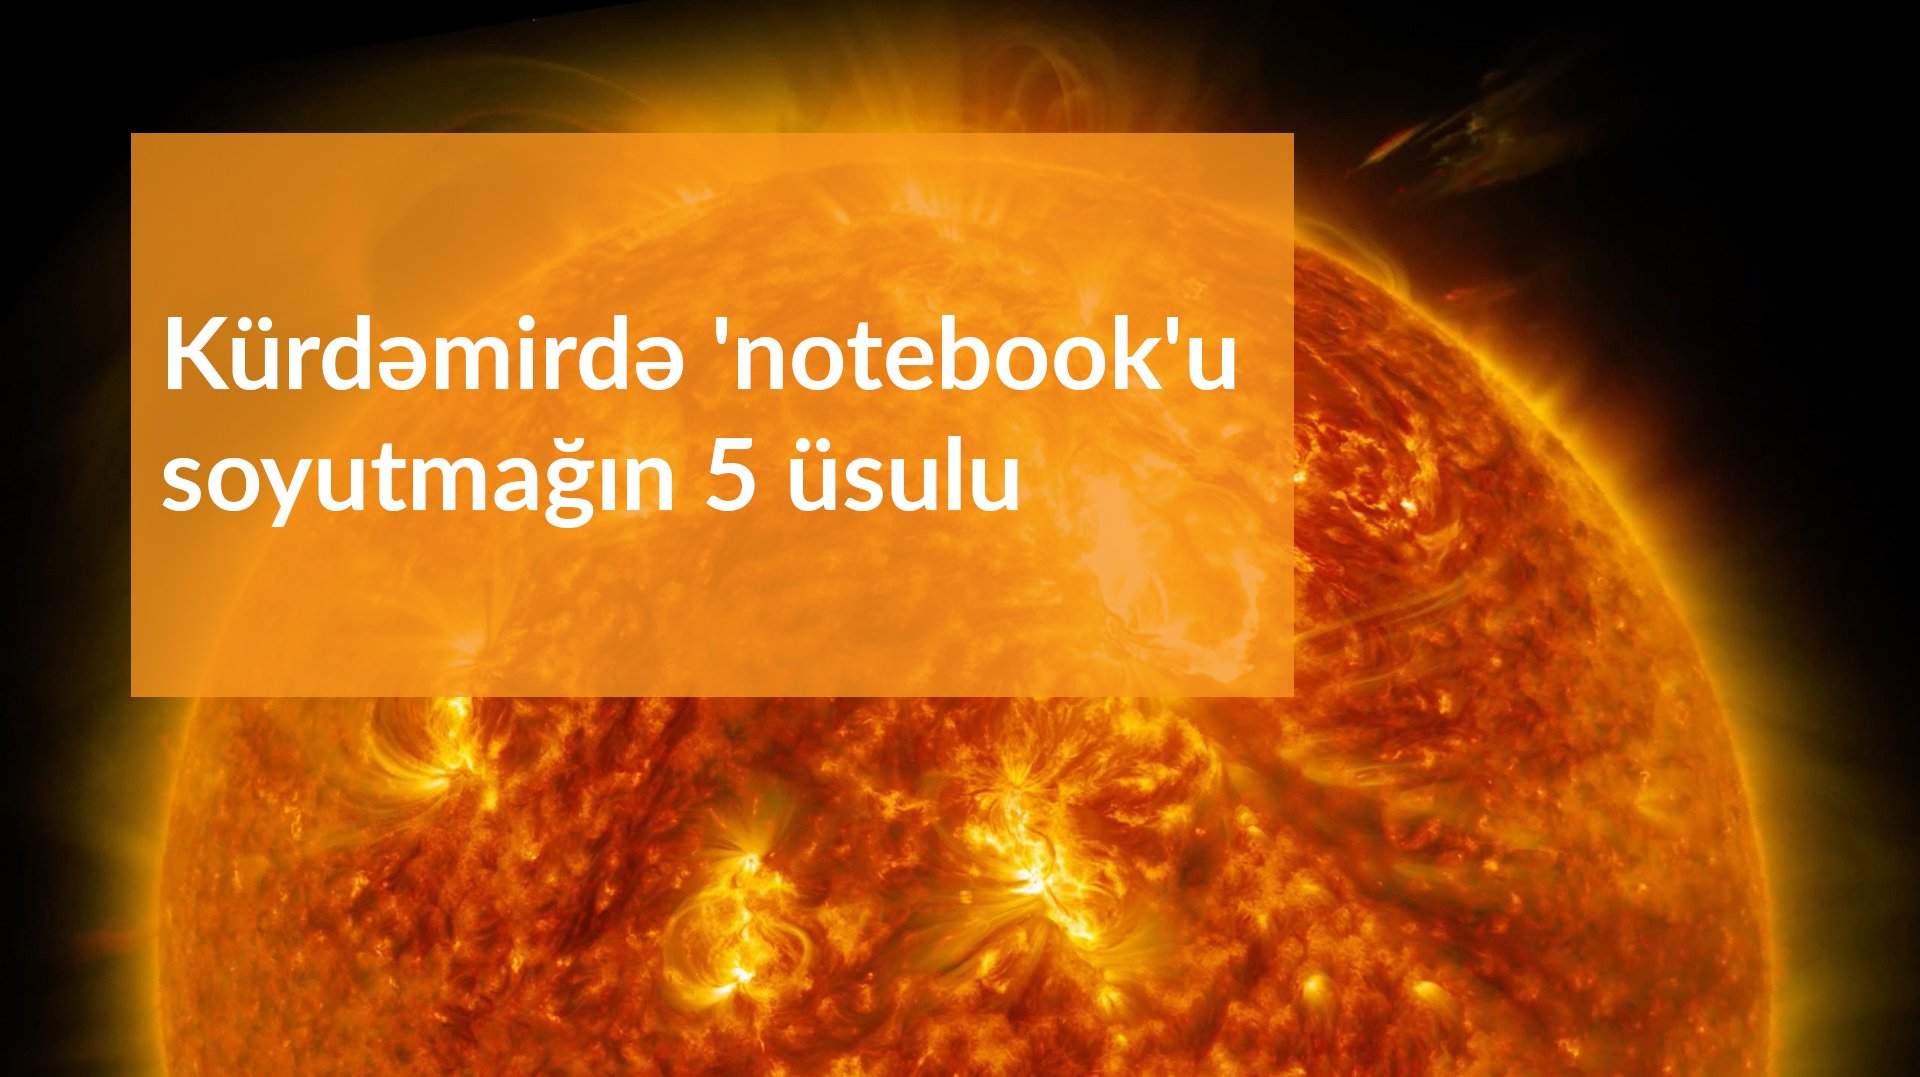 notebooku soyutmagin usullari,soyutma sistemi,notebookum qizir,notebook cooler